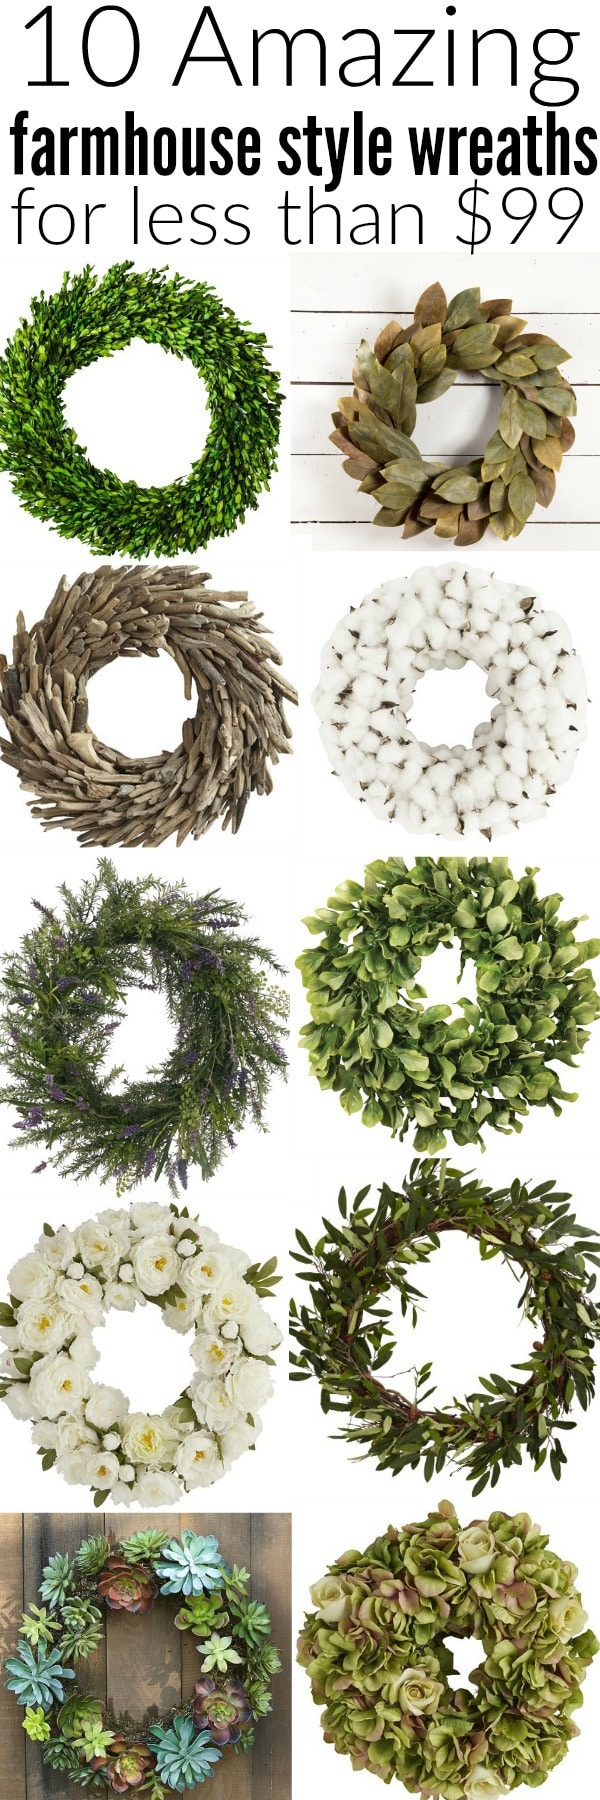 10 amazing farmhouse style wreaths for Amazing wreaths